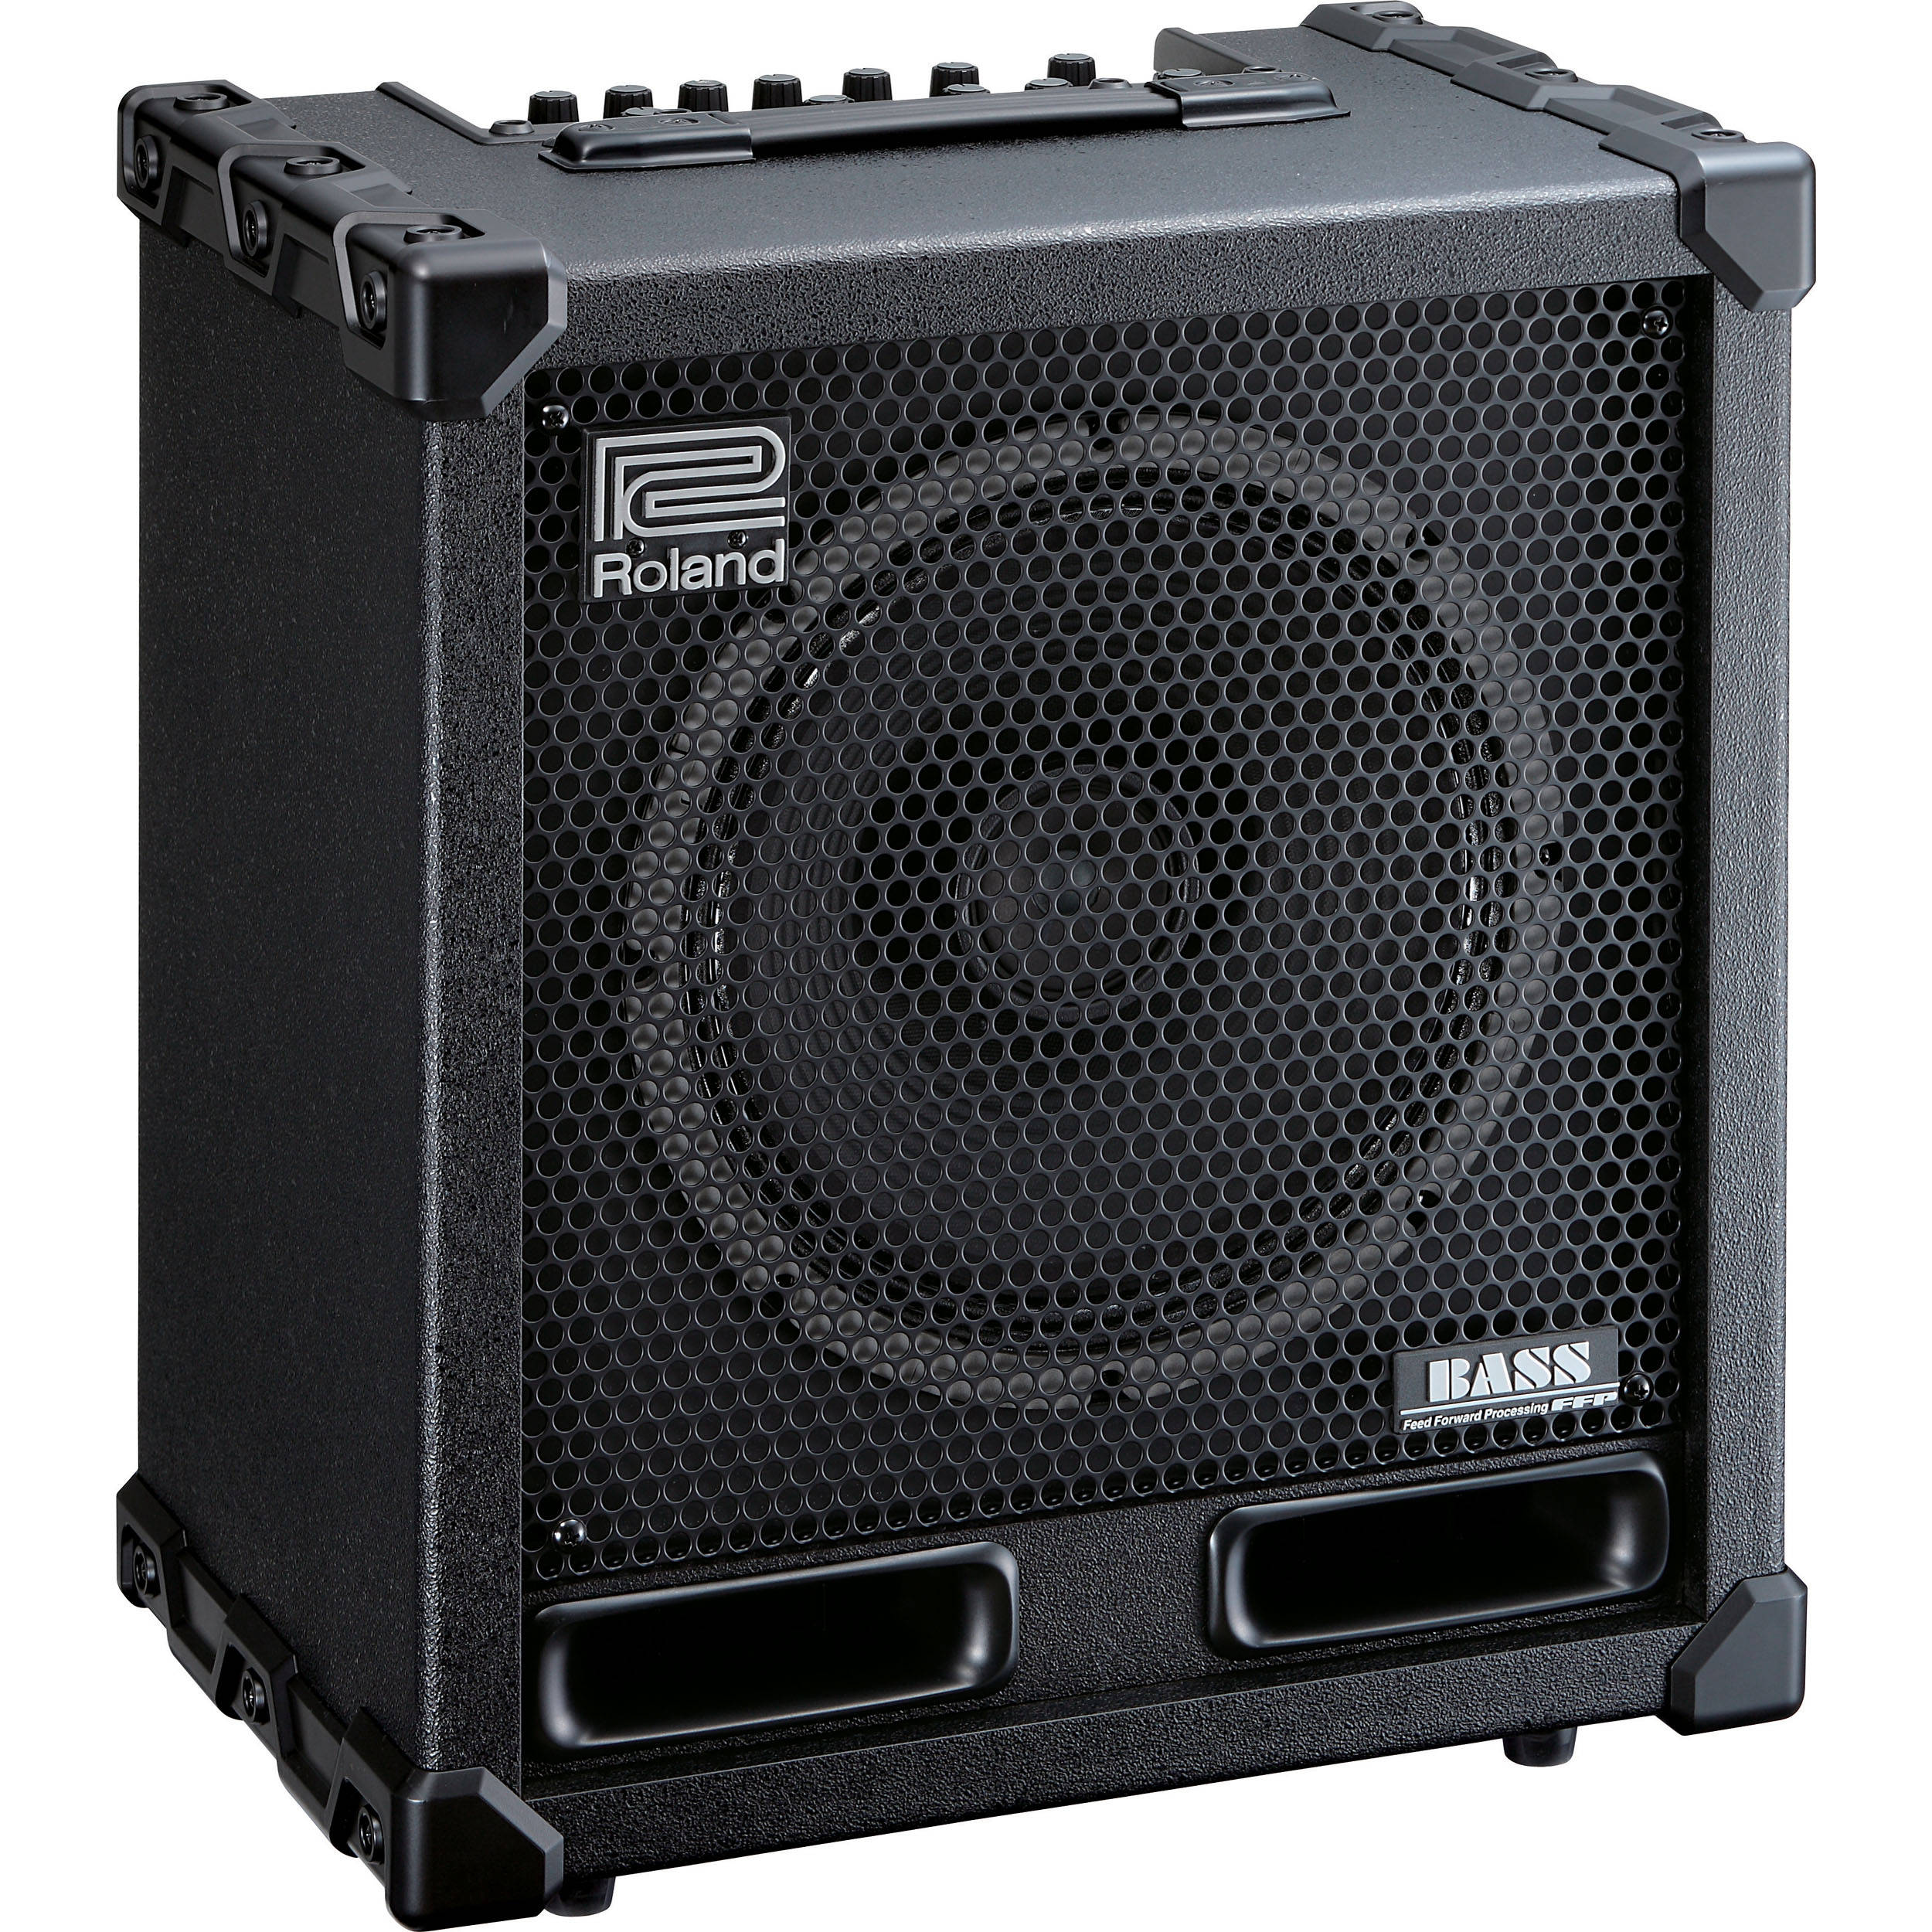 Bass Amplifier India Bass Amplifier/speaker